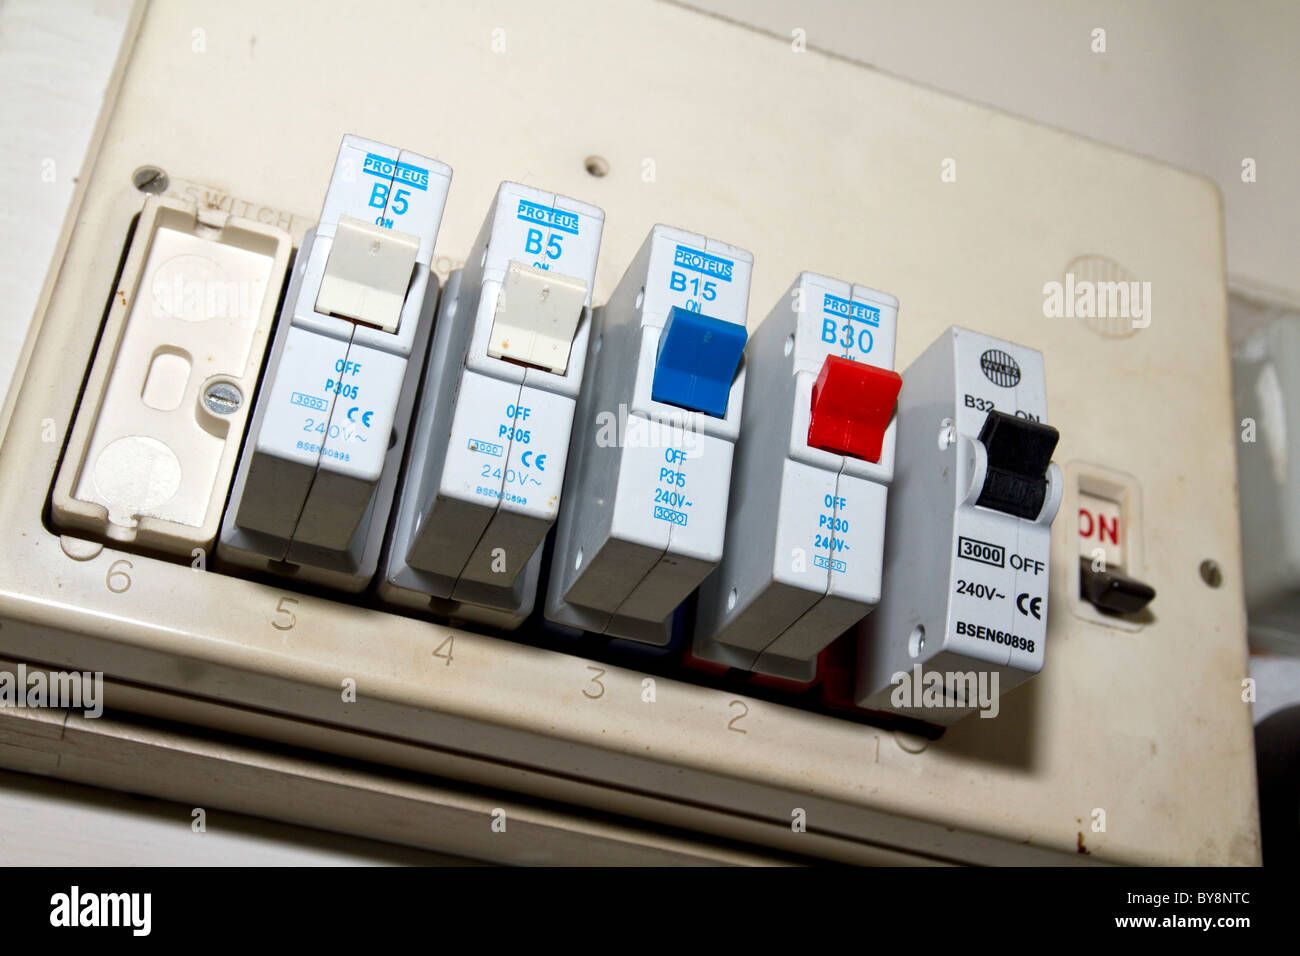 uk old electric fuse box in a london house BY8NTC uk old electric fuse box in a london house stock photo, royalty fuse box cover at crackthecode.co